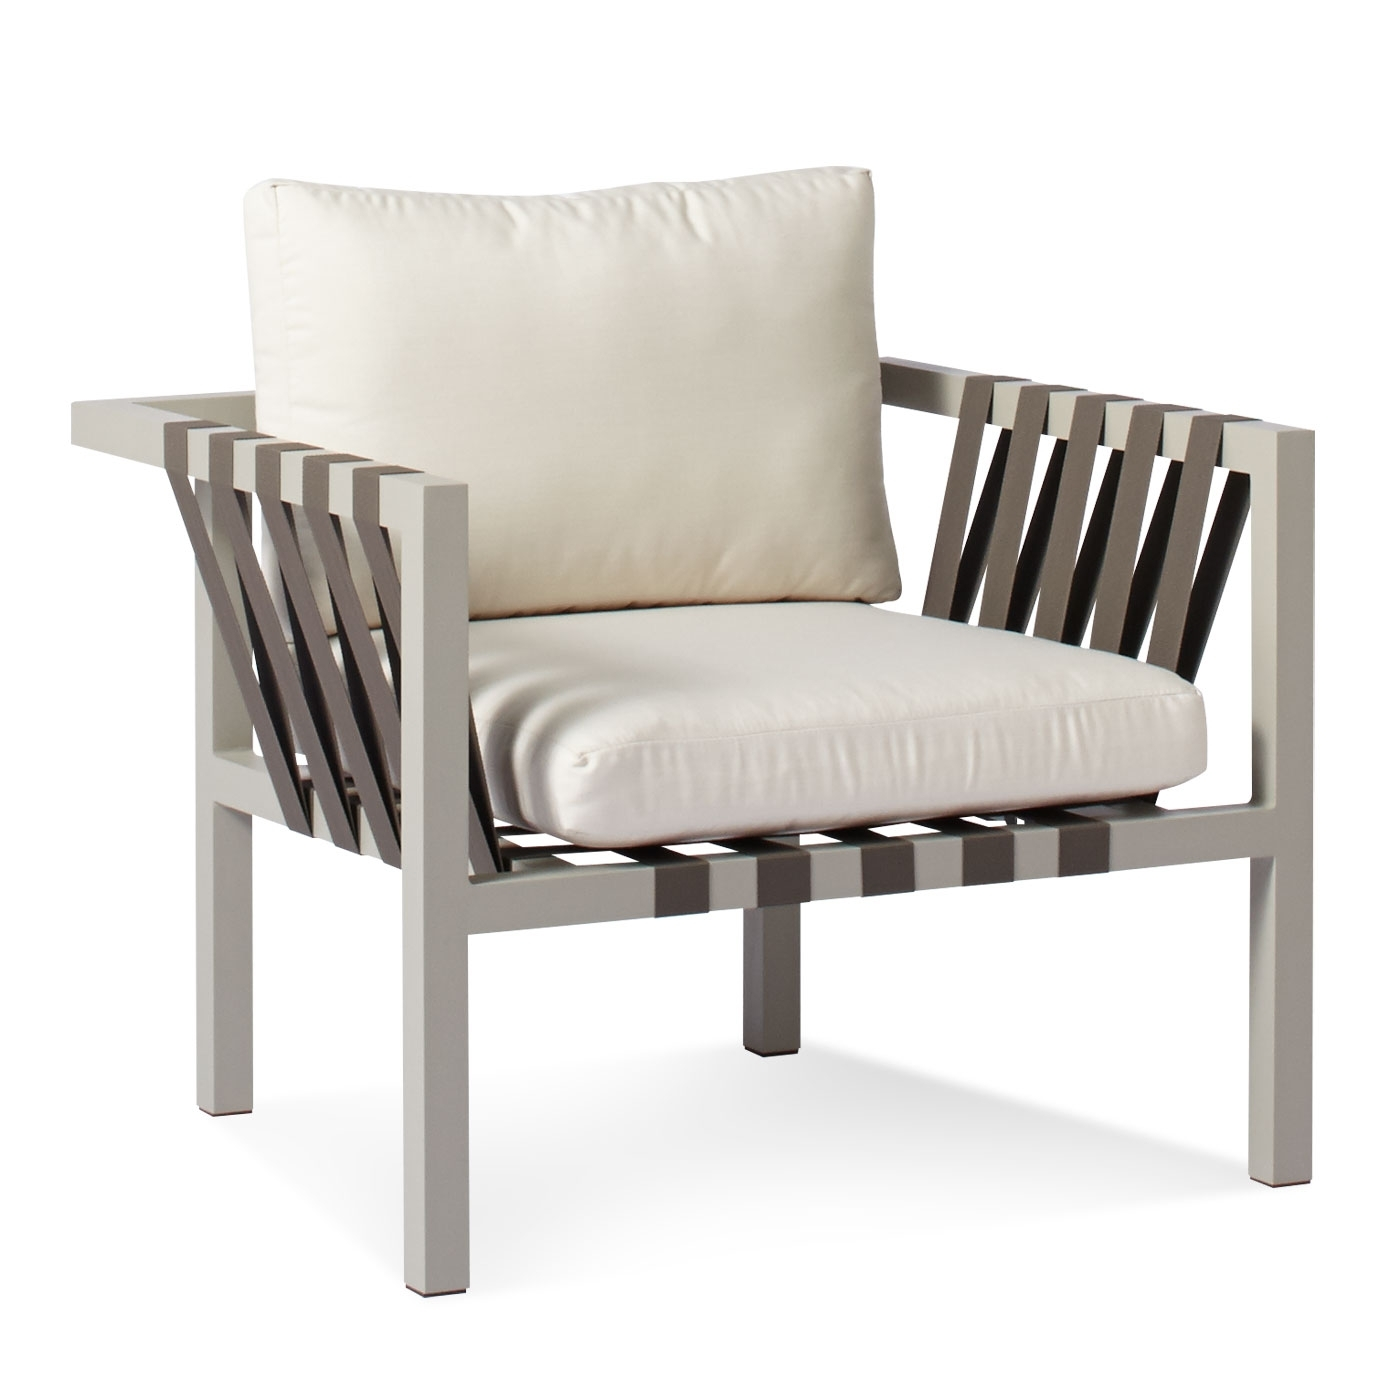 Most Current Lounge Chair : Discount Outdoor Furniture Rolston Patio Furniture Pertaining To Inexpensive Outdoor Chaise Lounge Chairs (View 5 of 15)